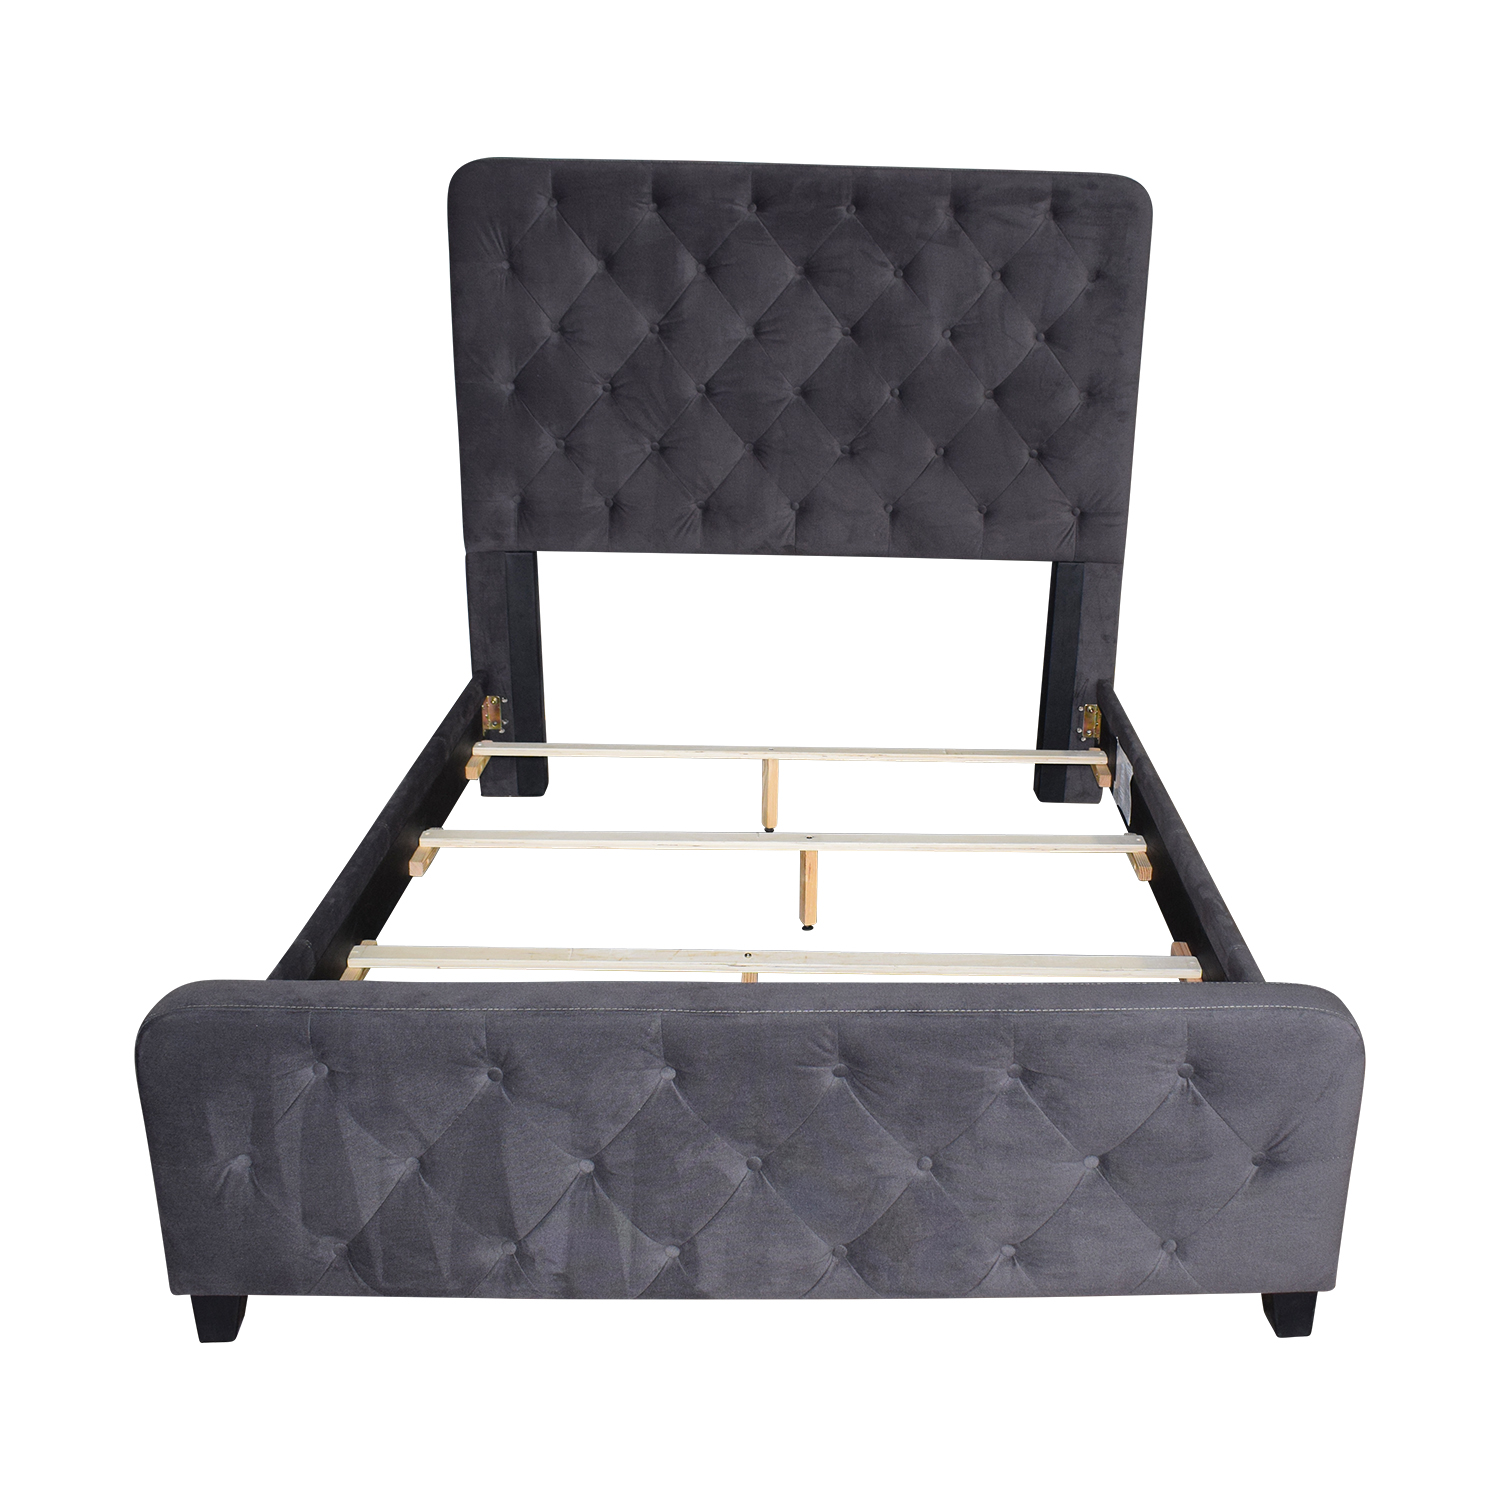 Raymour & Flanigan Raymour & Flanigan Dark Grey Tufted Queen Bed Frame coupon